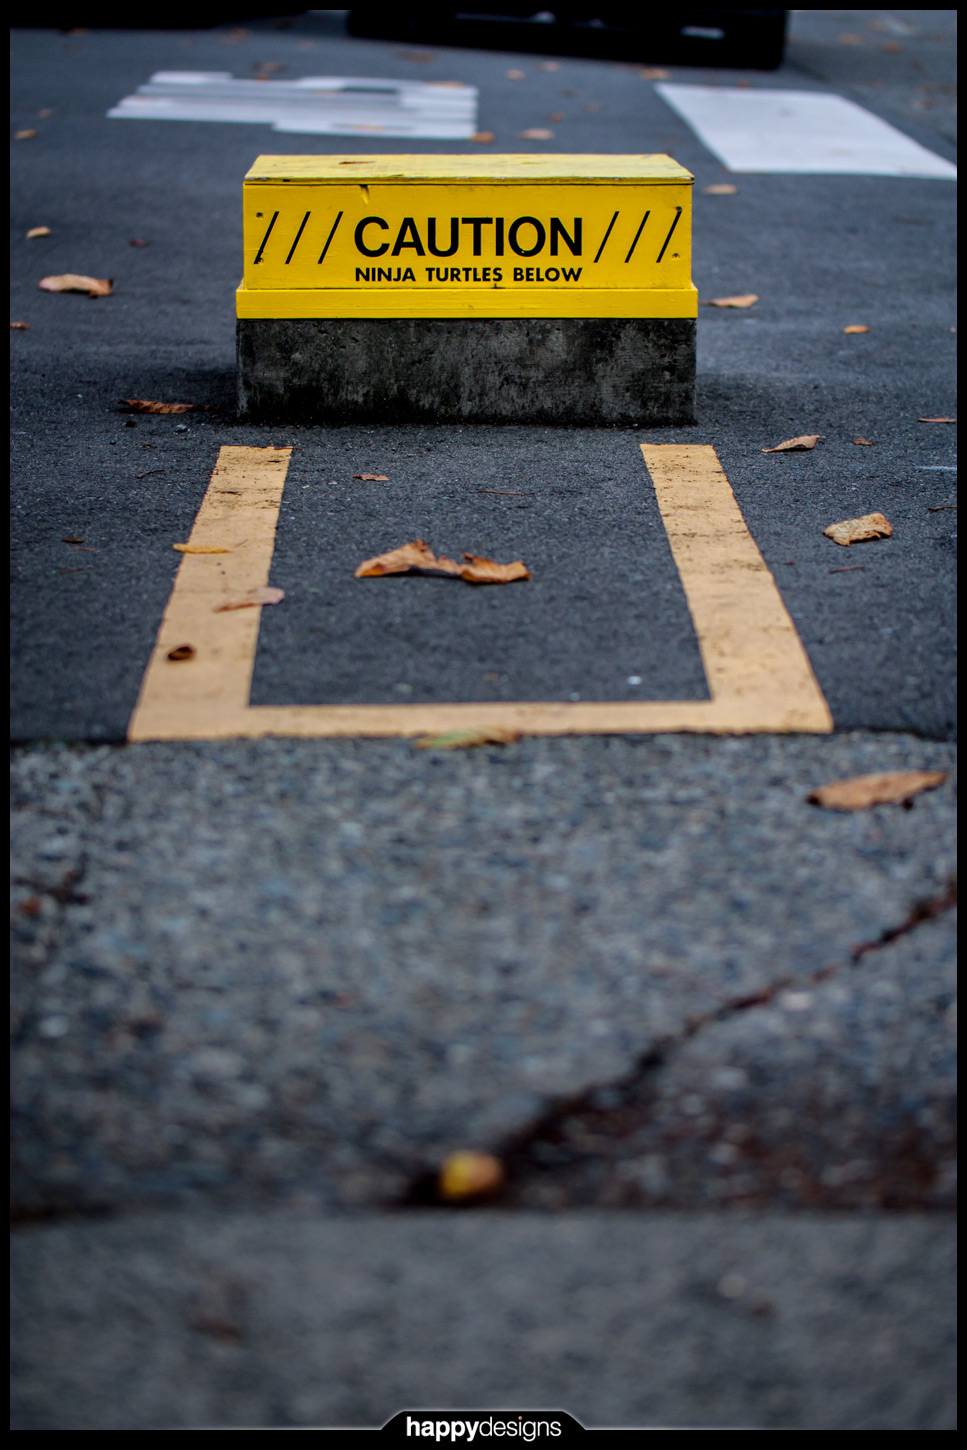 20121113 - Caution-ninja turtles below